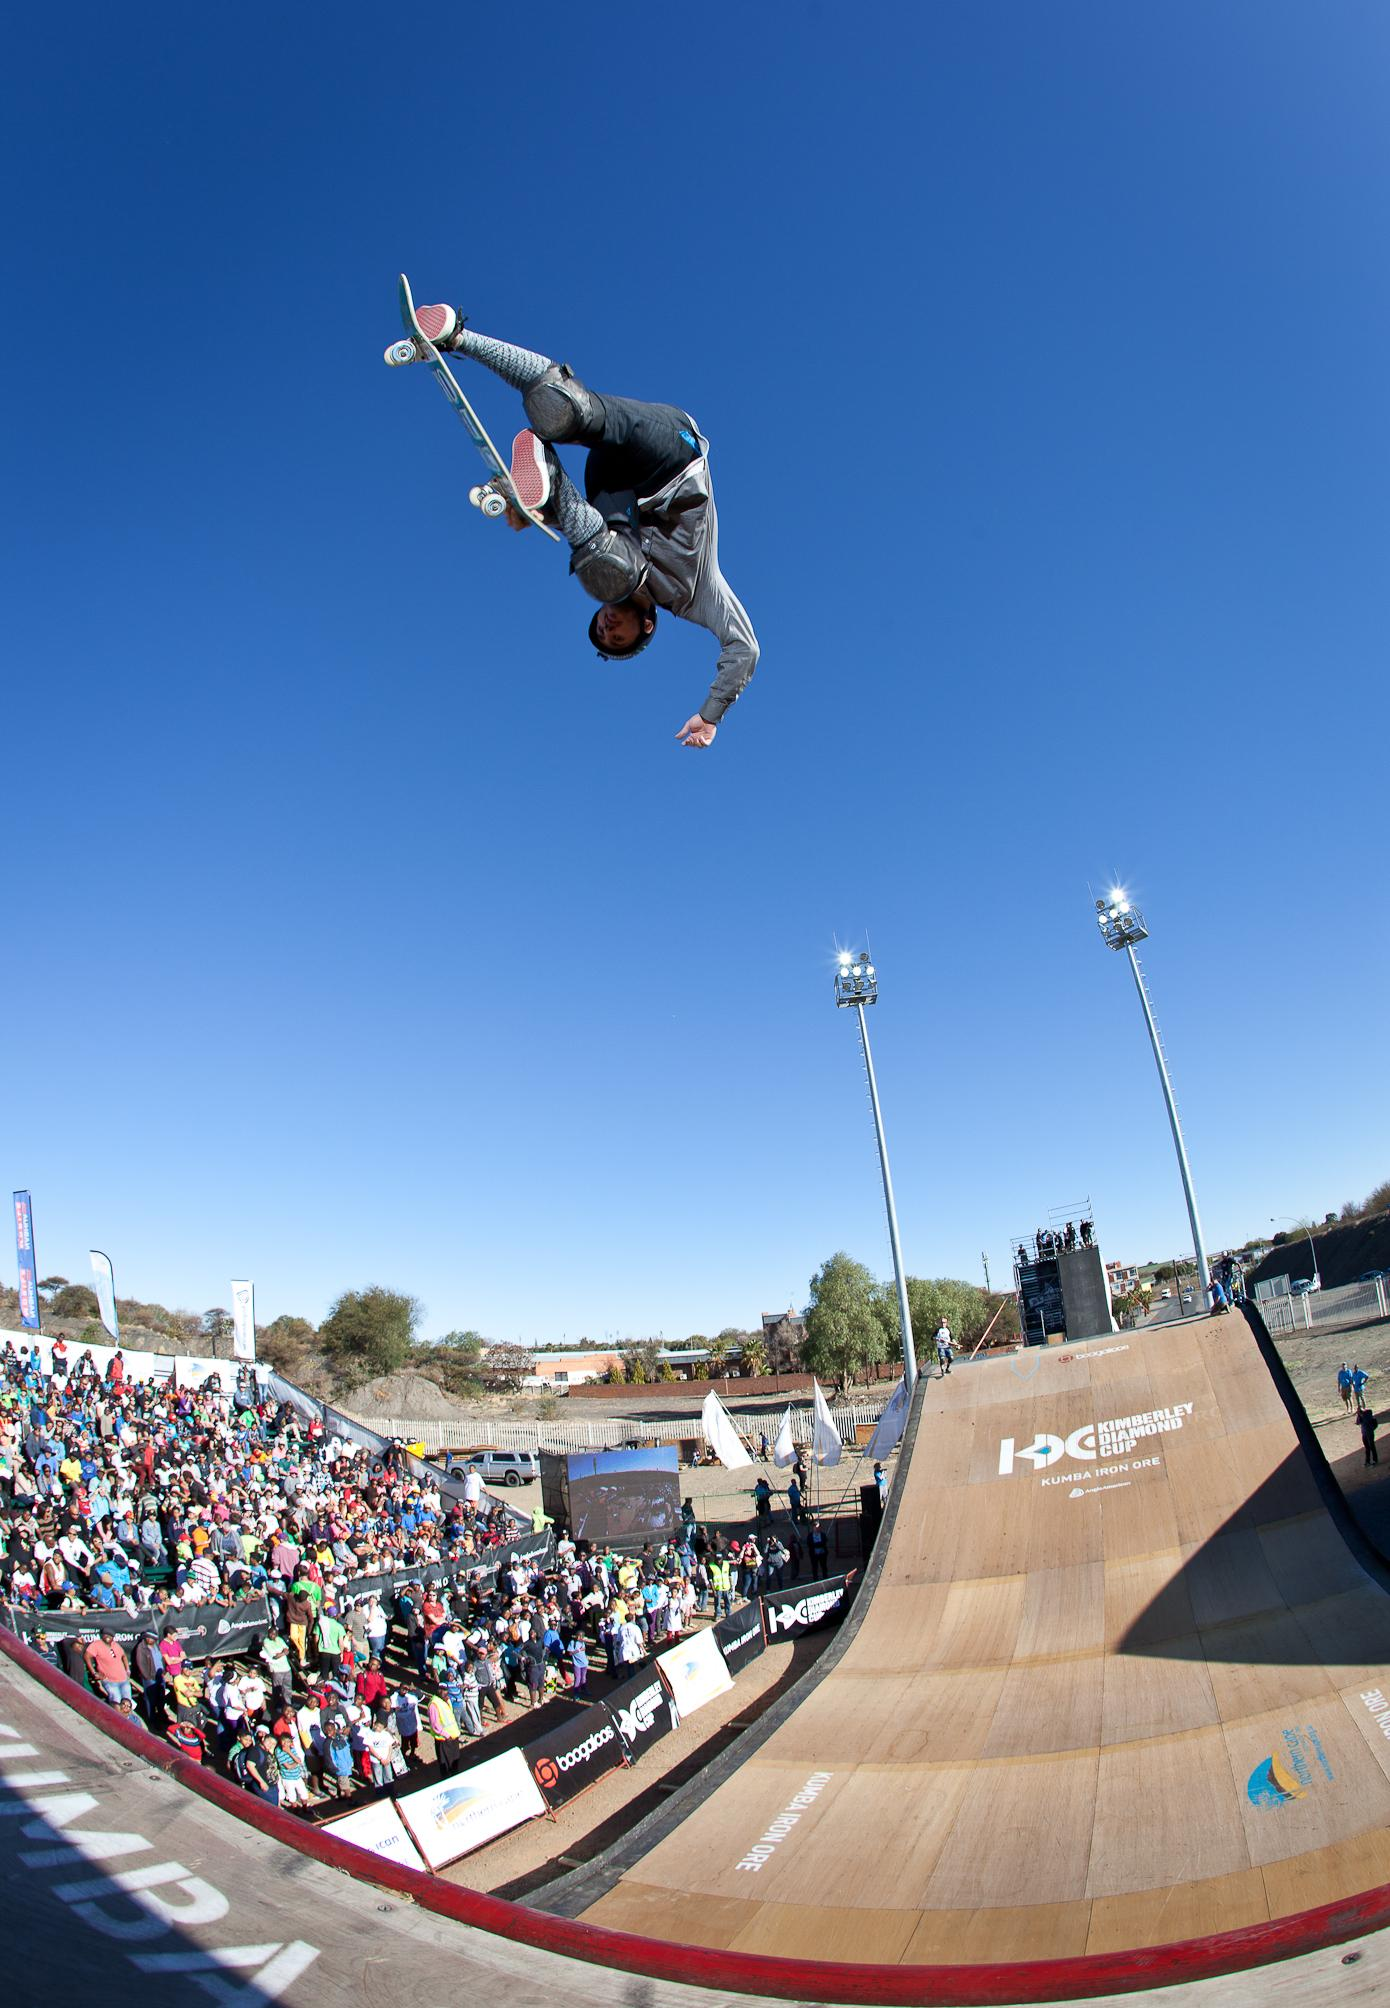 Lee and London Public Relations Client 2014 Skateboarding World Championships at Kimberley Diamond Cup